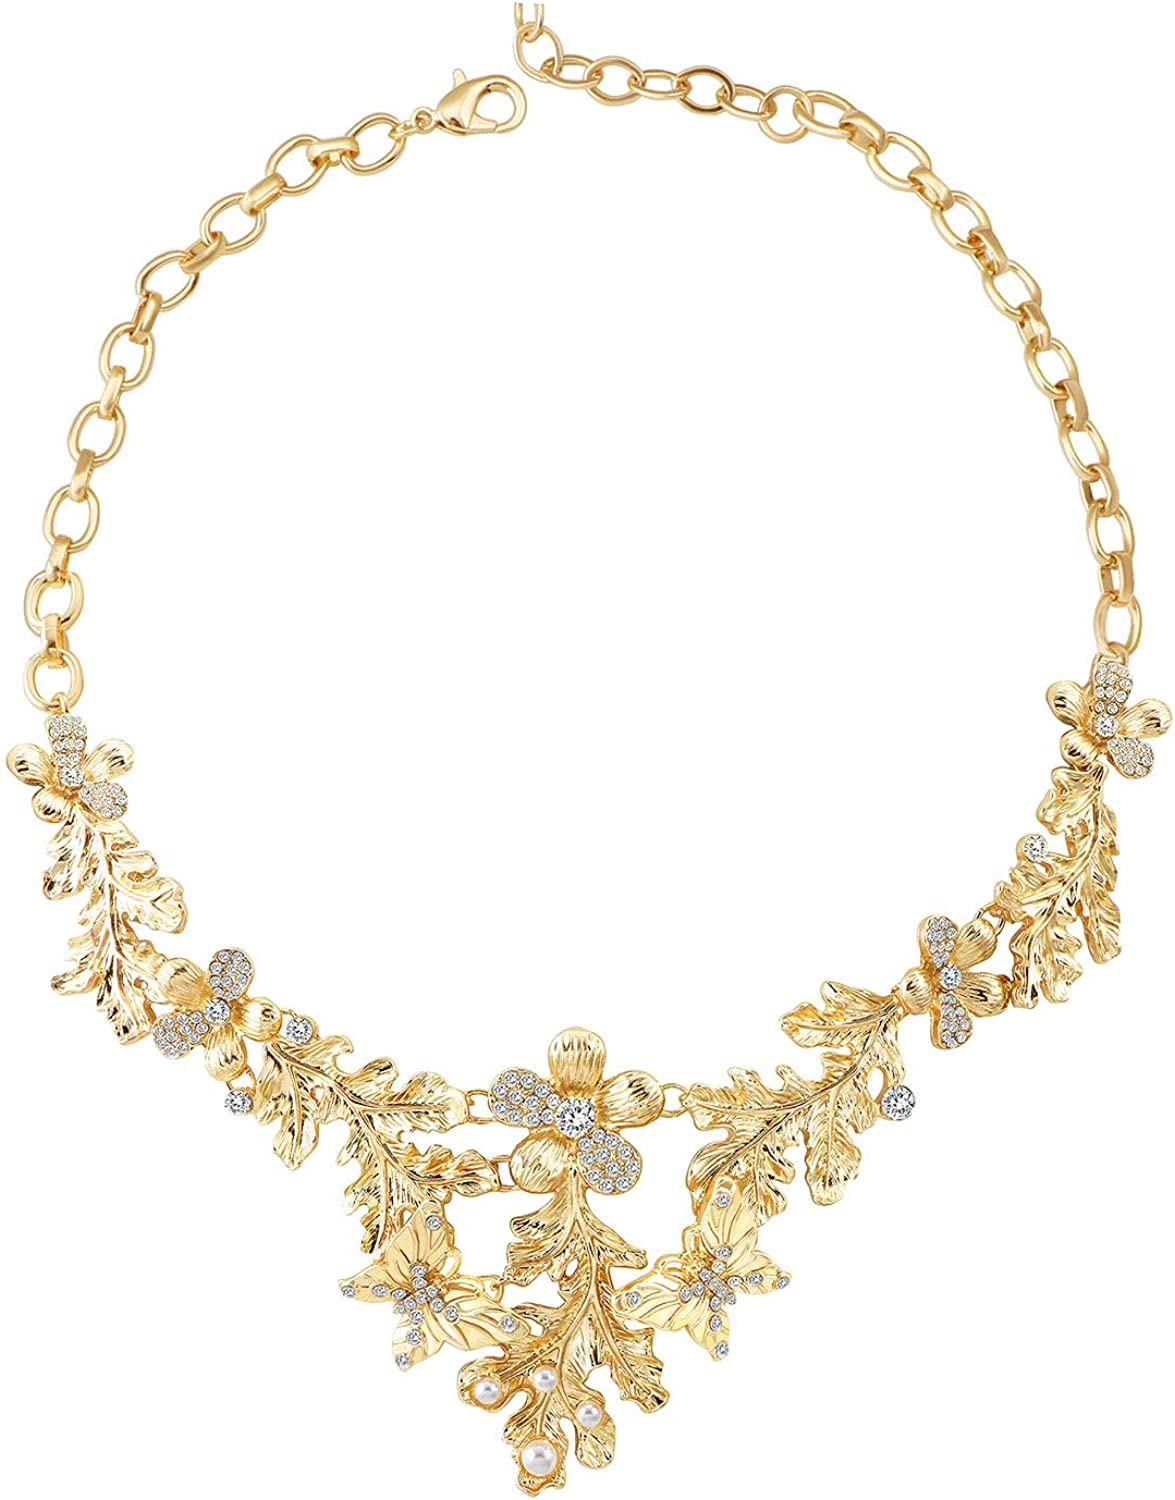 Gold Statement Butterfly Necklace for women,Elegant Love Story Necklace Gift for Women